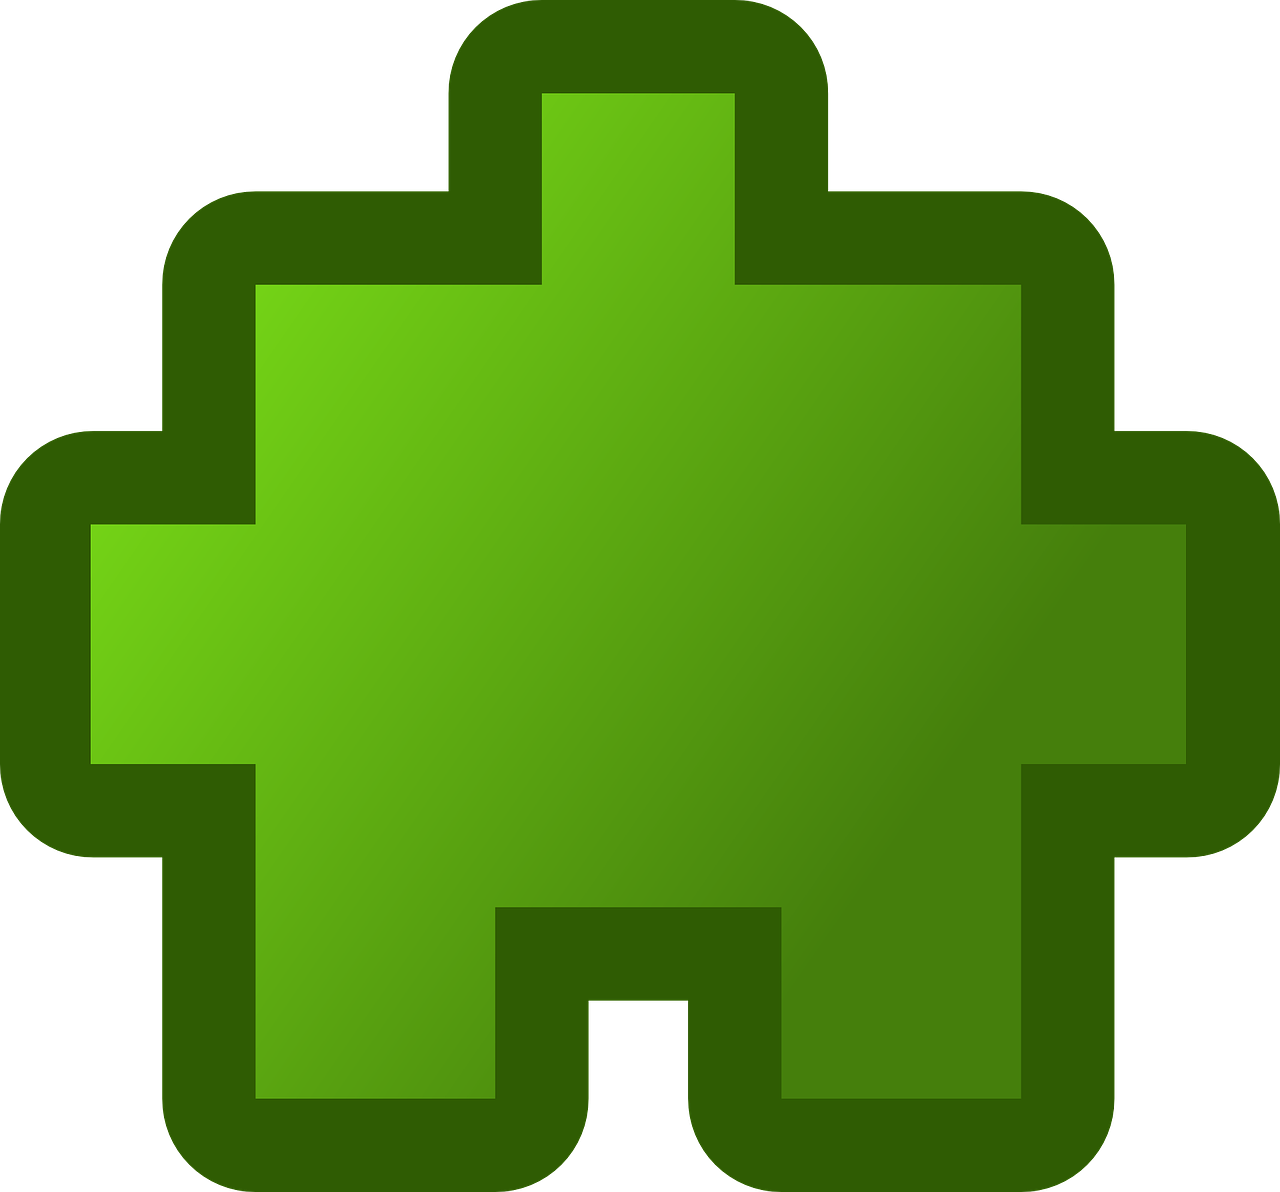 puzzle piece green free photo